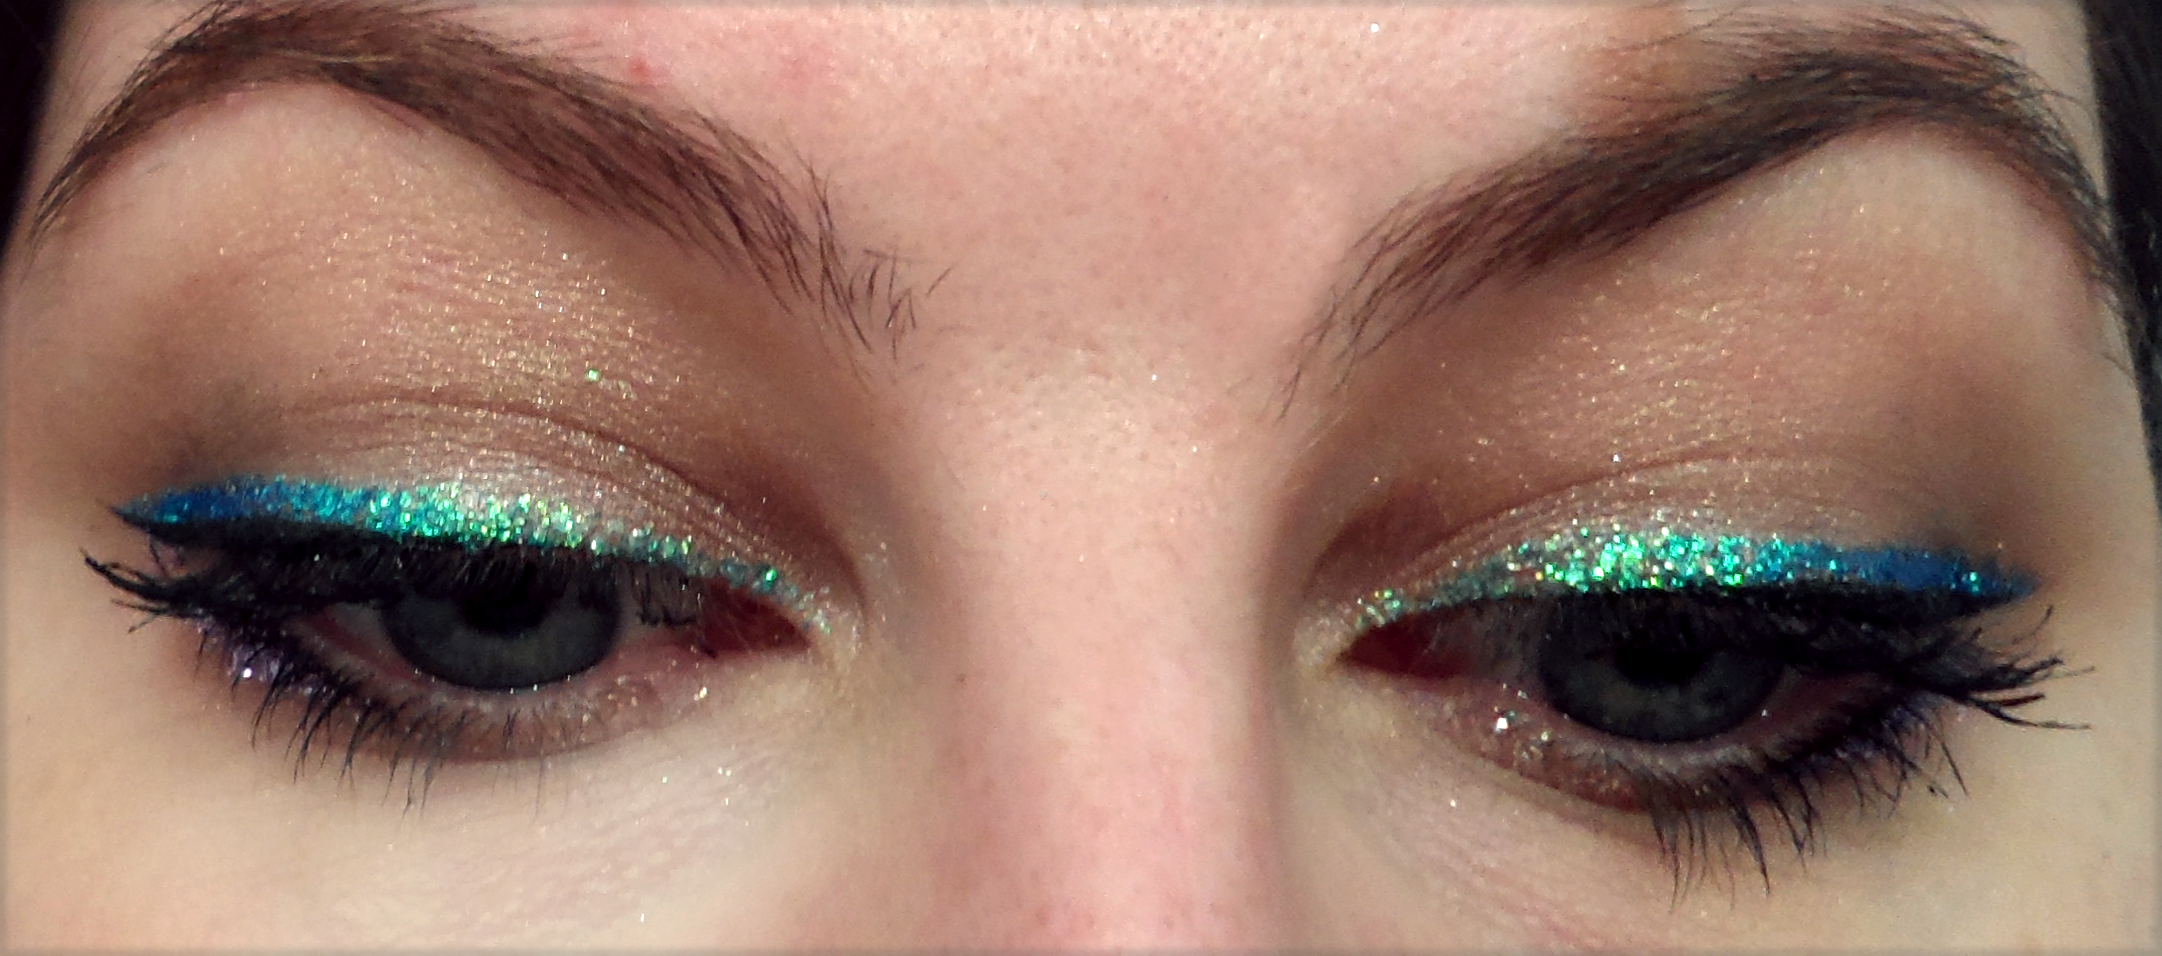 Party Makeup Emerald Glitter Eyeliner Cosmetic Confessional